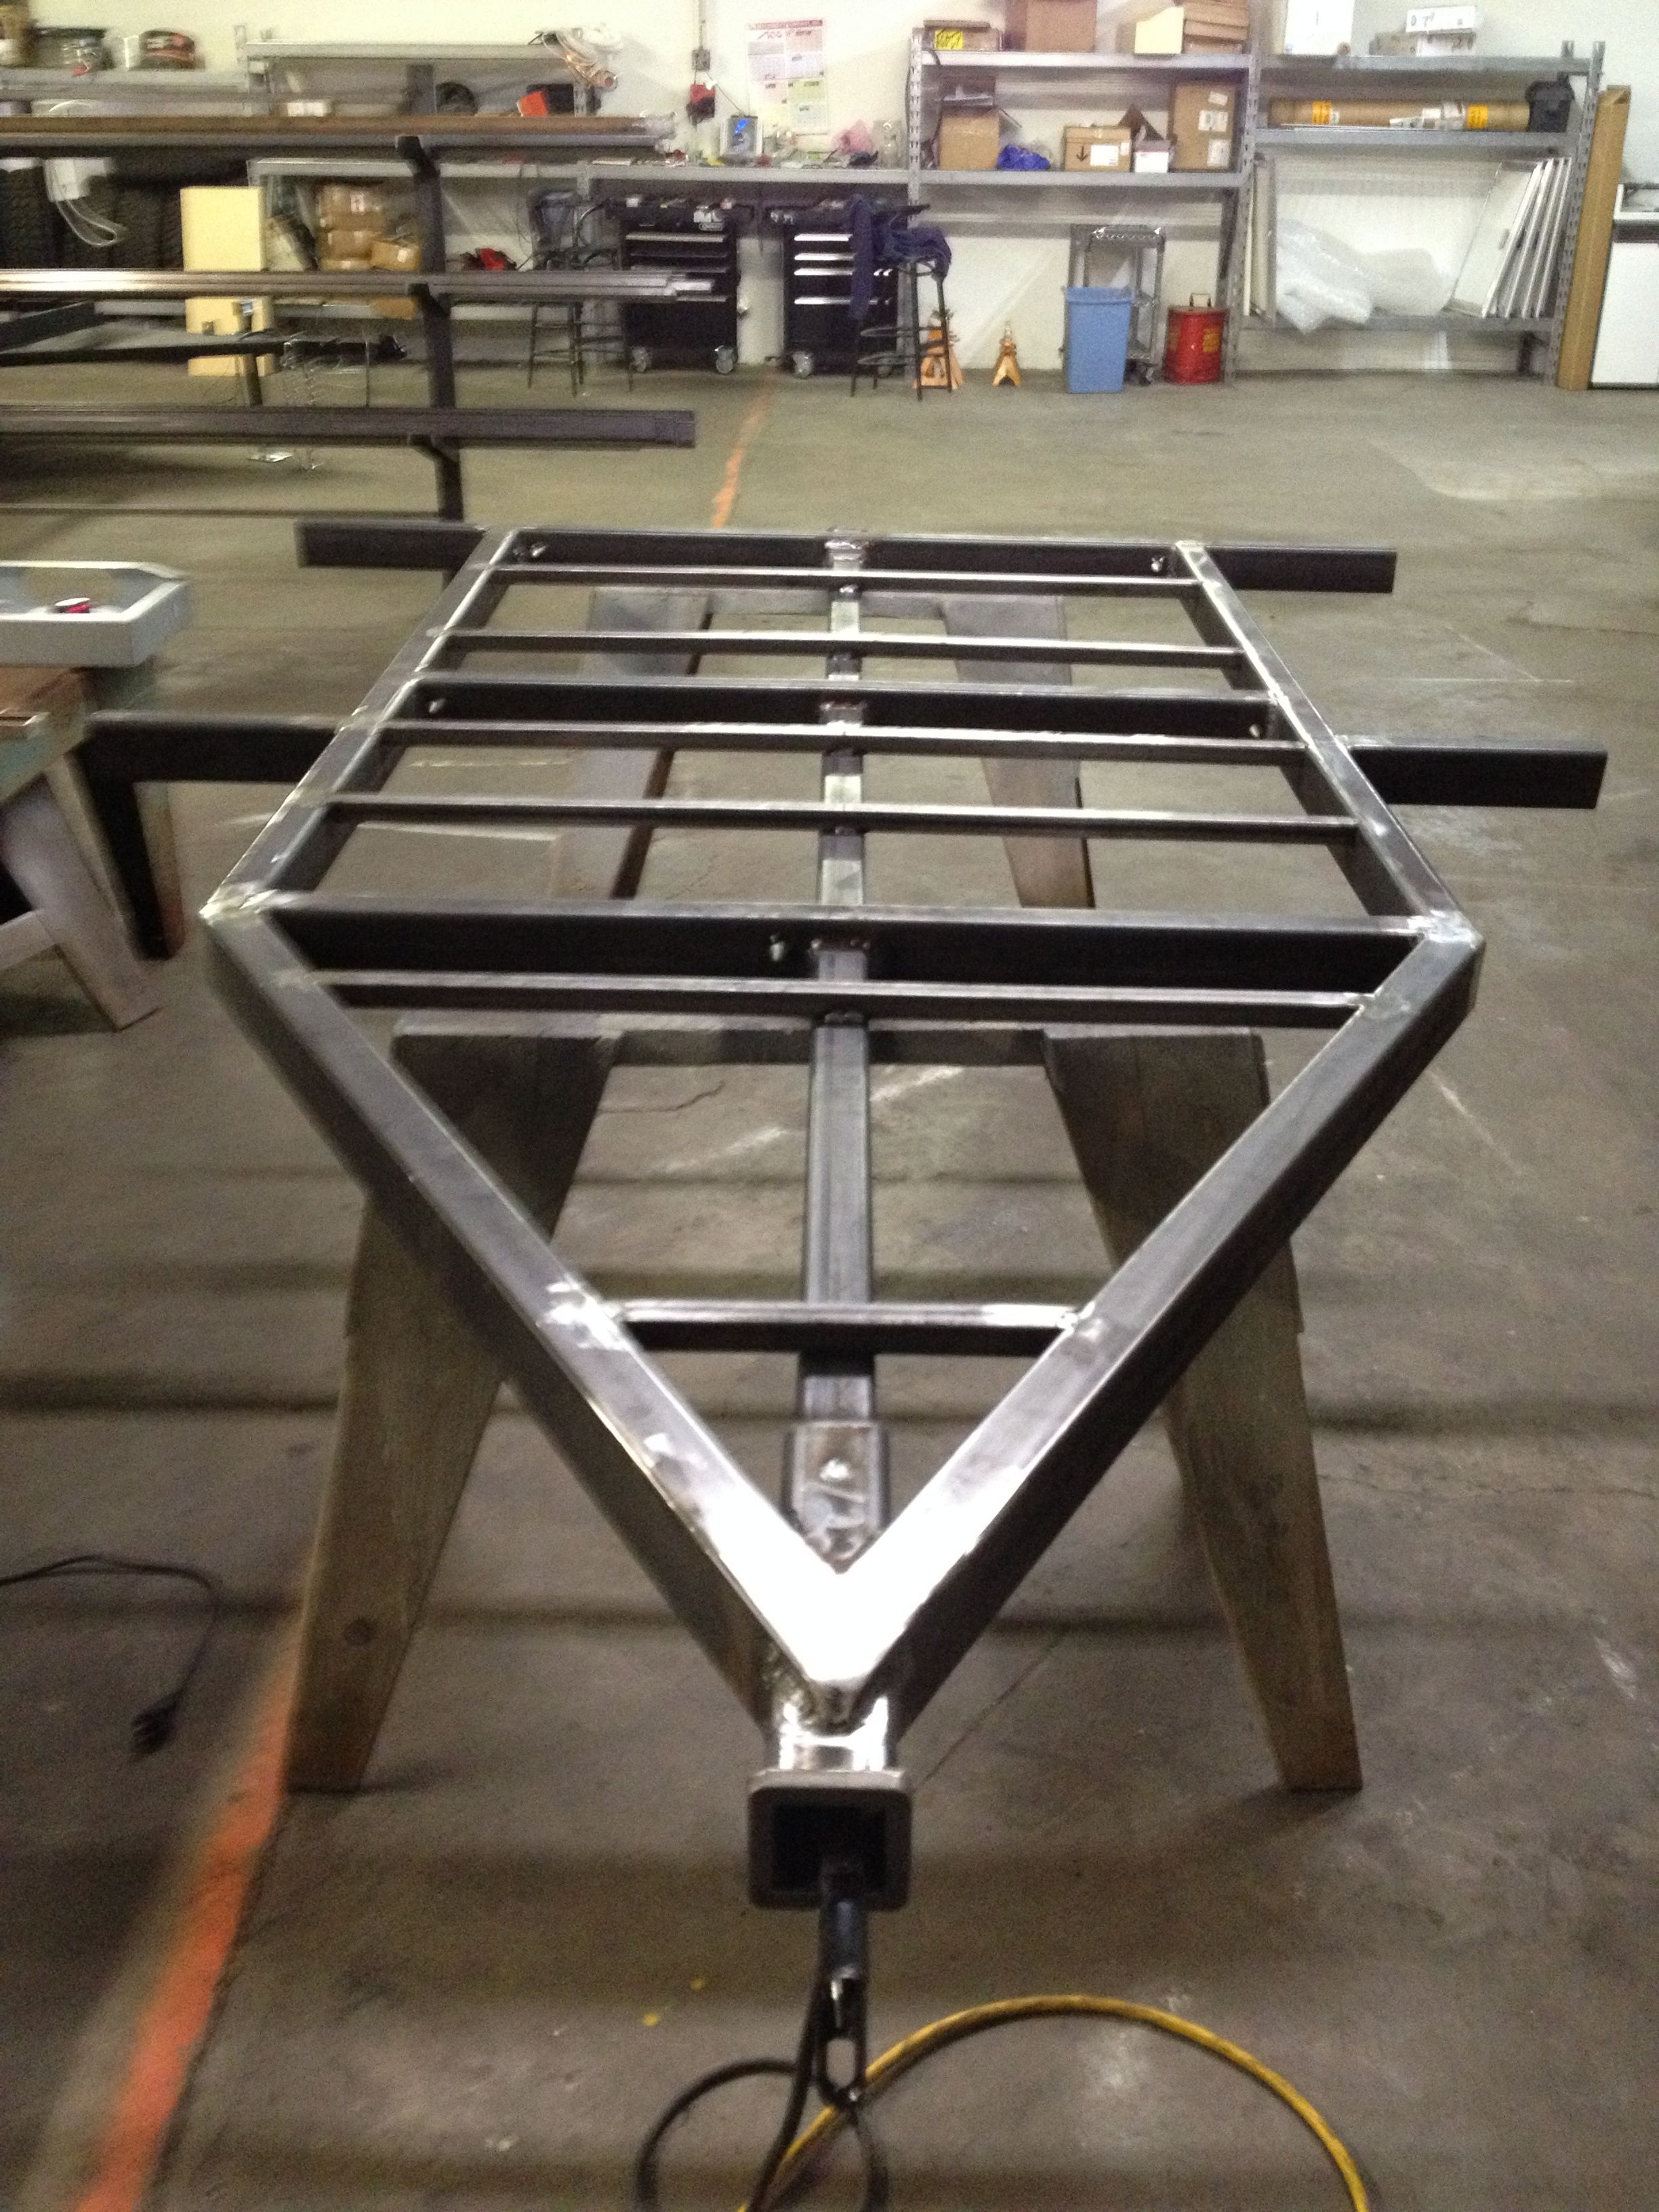 Designing And Building The Proper Frame For Any Special Use Trailer Lengthening Car Page 2 Pirate4x4com 4x4 Offroad Took Us Down A